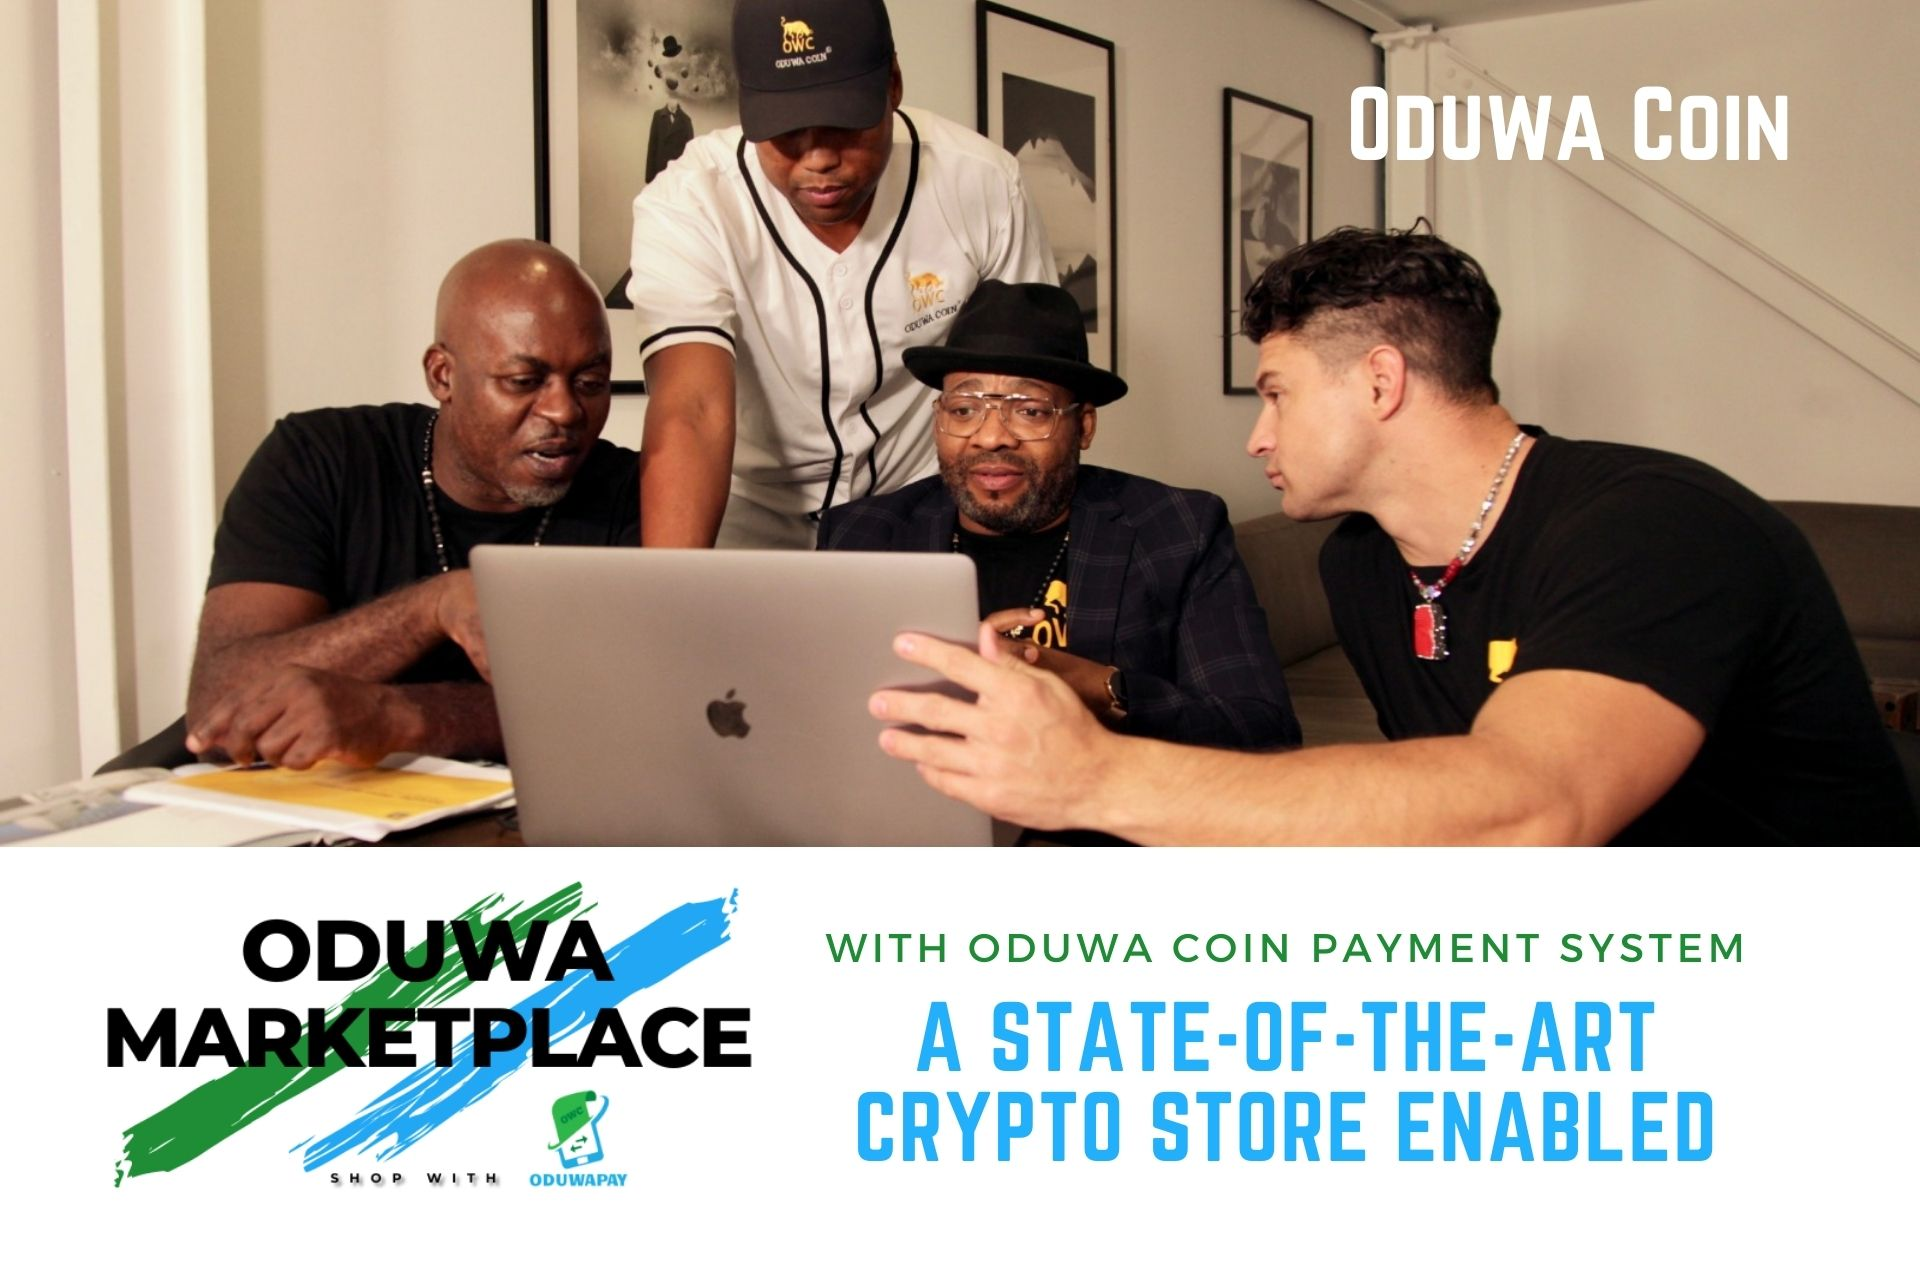 Oduwa Coin Marketplace | A State-of-the-Art Store Enabled with Oduwa Coin Payment System - Crypto Shib